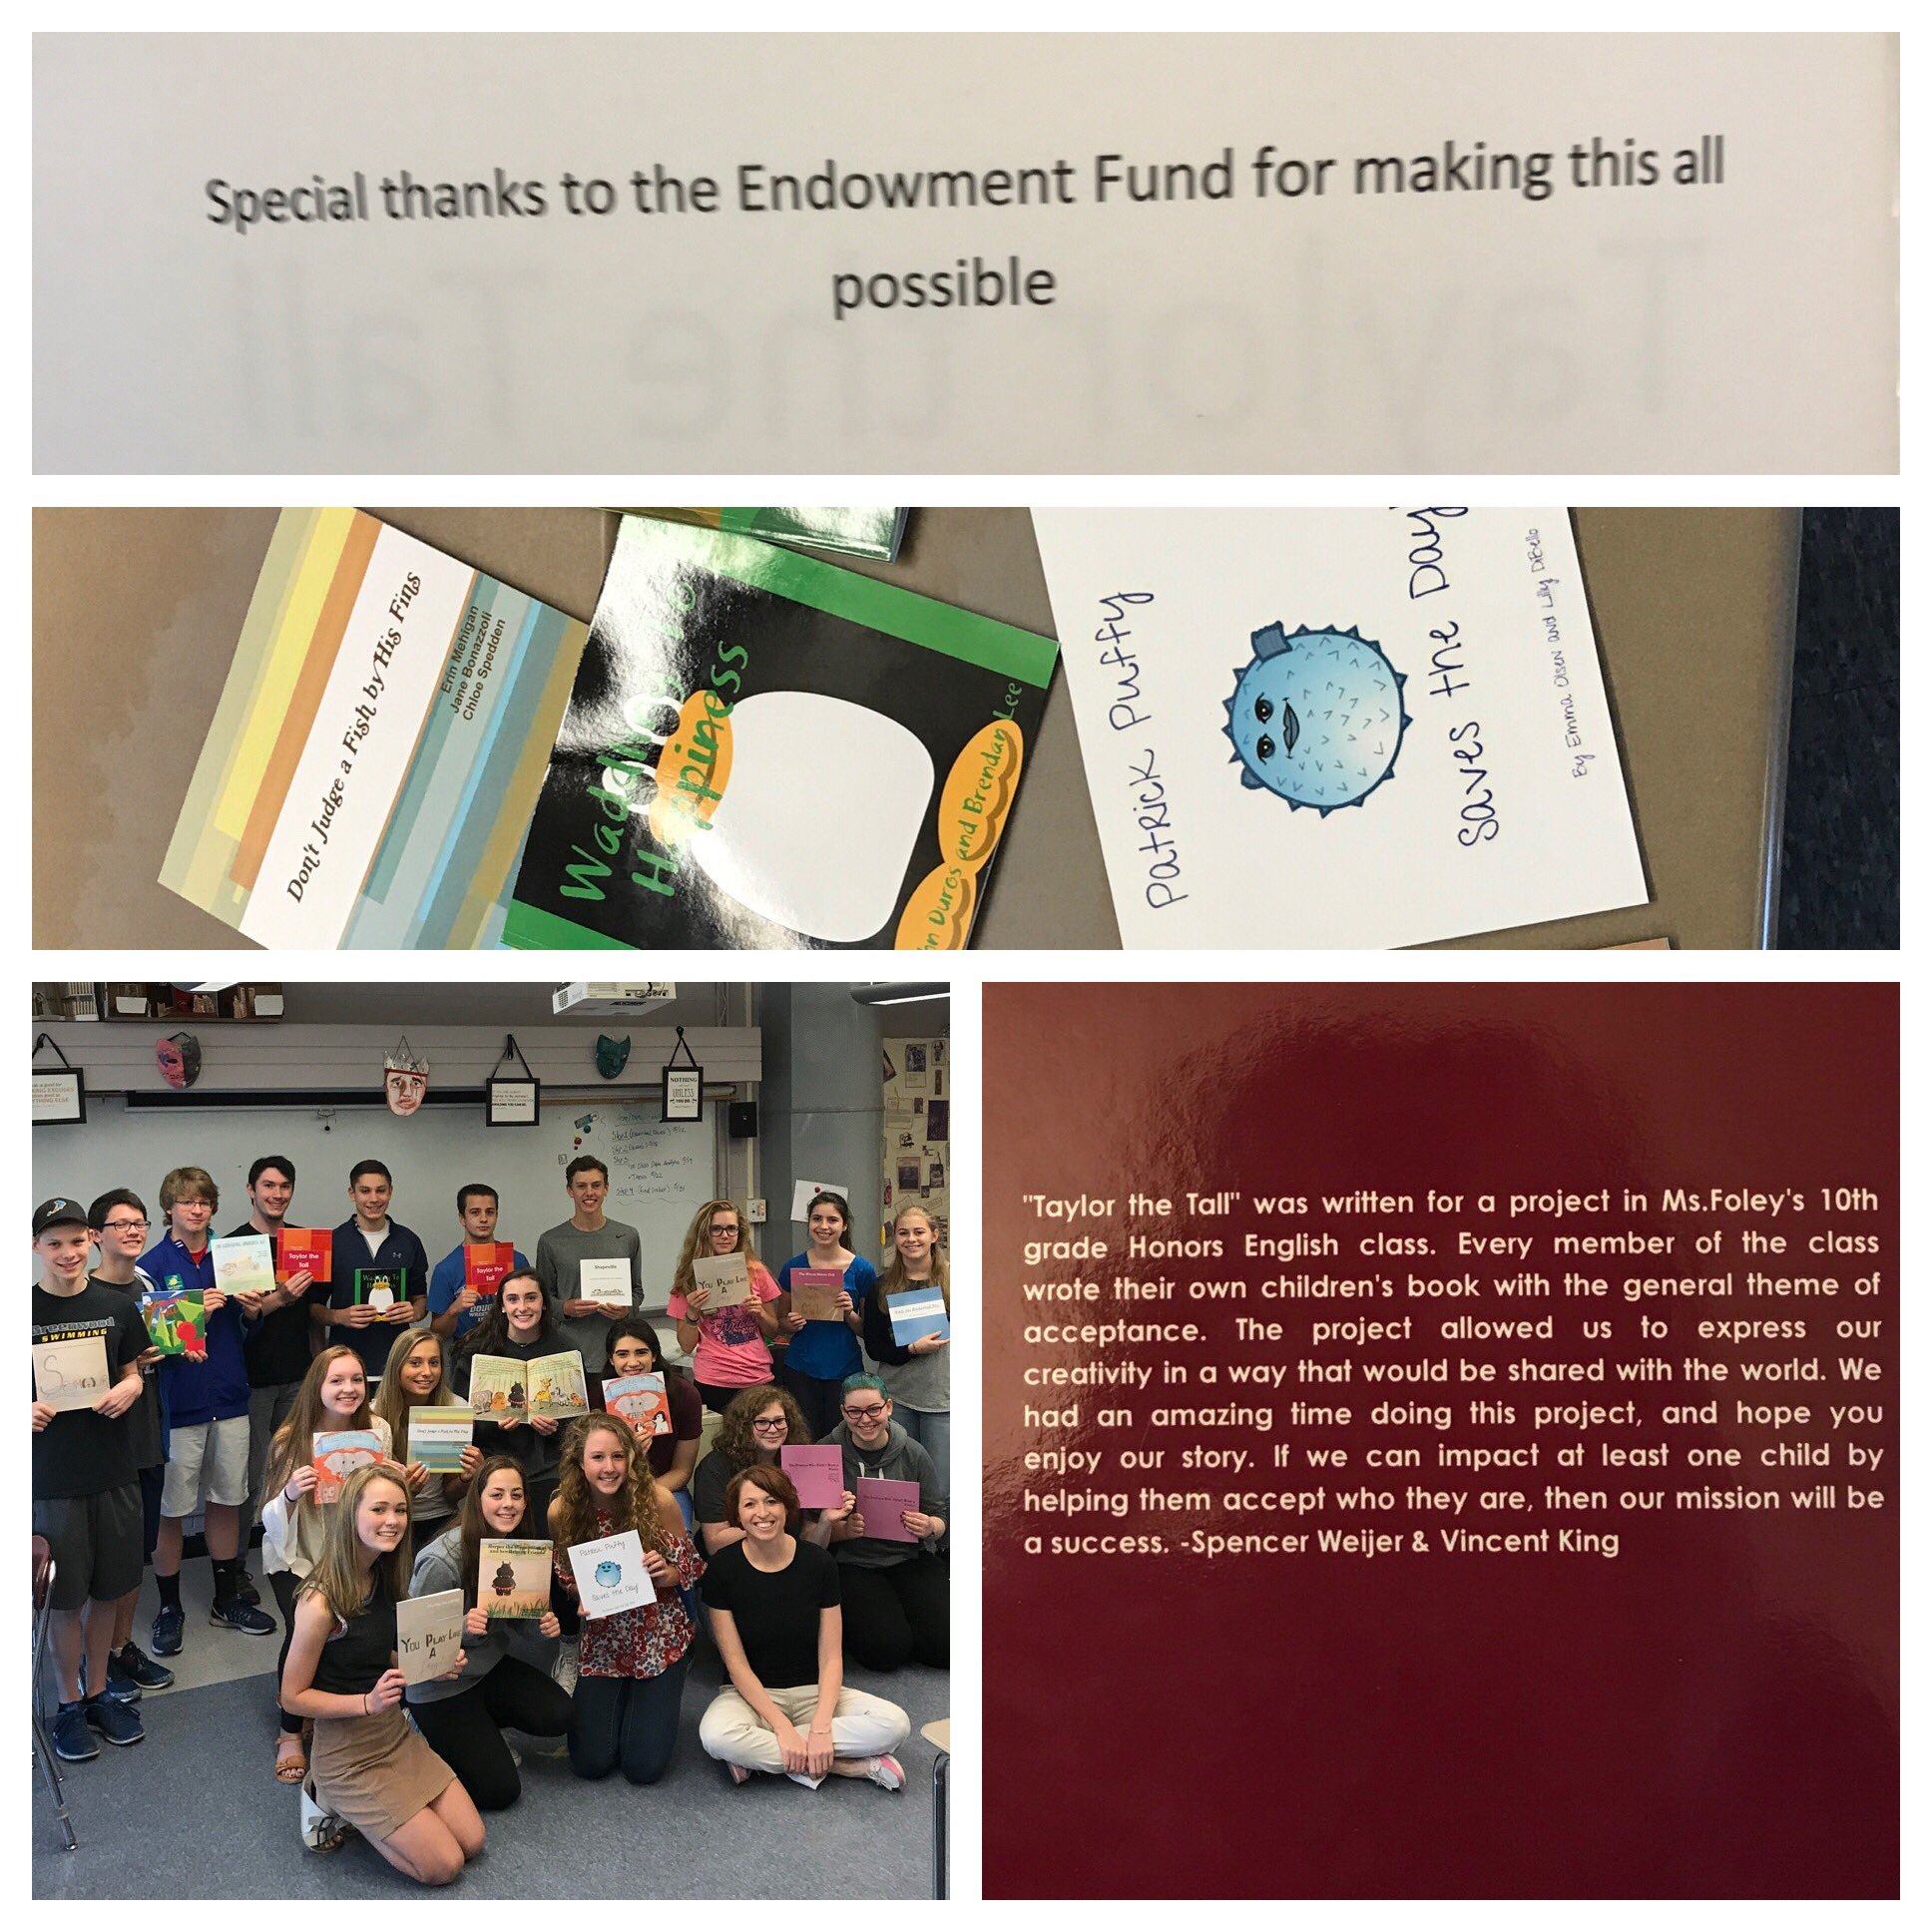 Nashoba Endowment Fund paid to publish children's books! Thank you so awesome! @FoleyProcko @ClintonItem @Chieftain_Chat https://t.co/vFNBpCYiqC